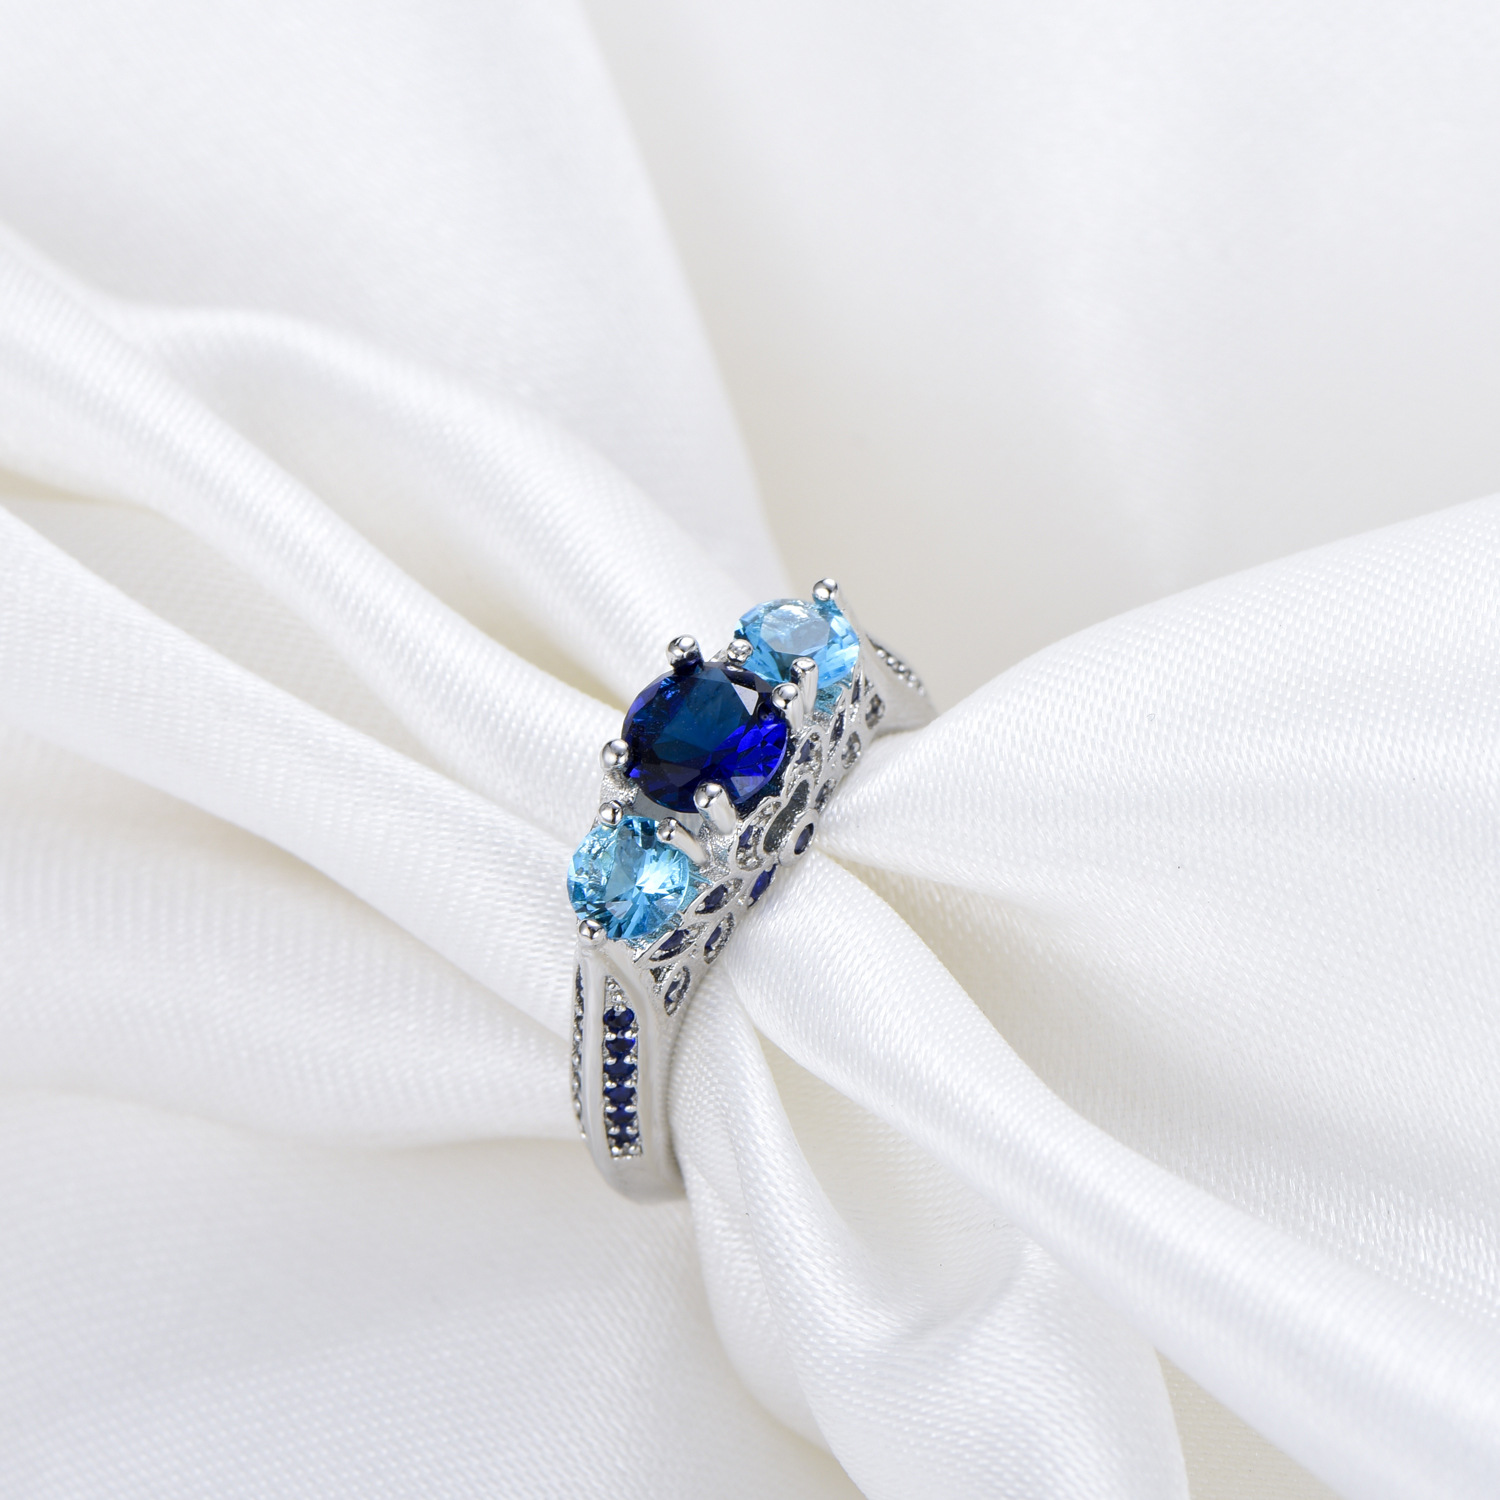 Blue Sapphire Anillo De Ring with Diamonds for Women Bizuteria of Bague or Jaune Amethyst Diamante Obsidian Jade Ring 6 7 8 9 10 in Rings from Jewelry Accessories